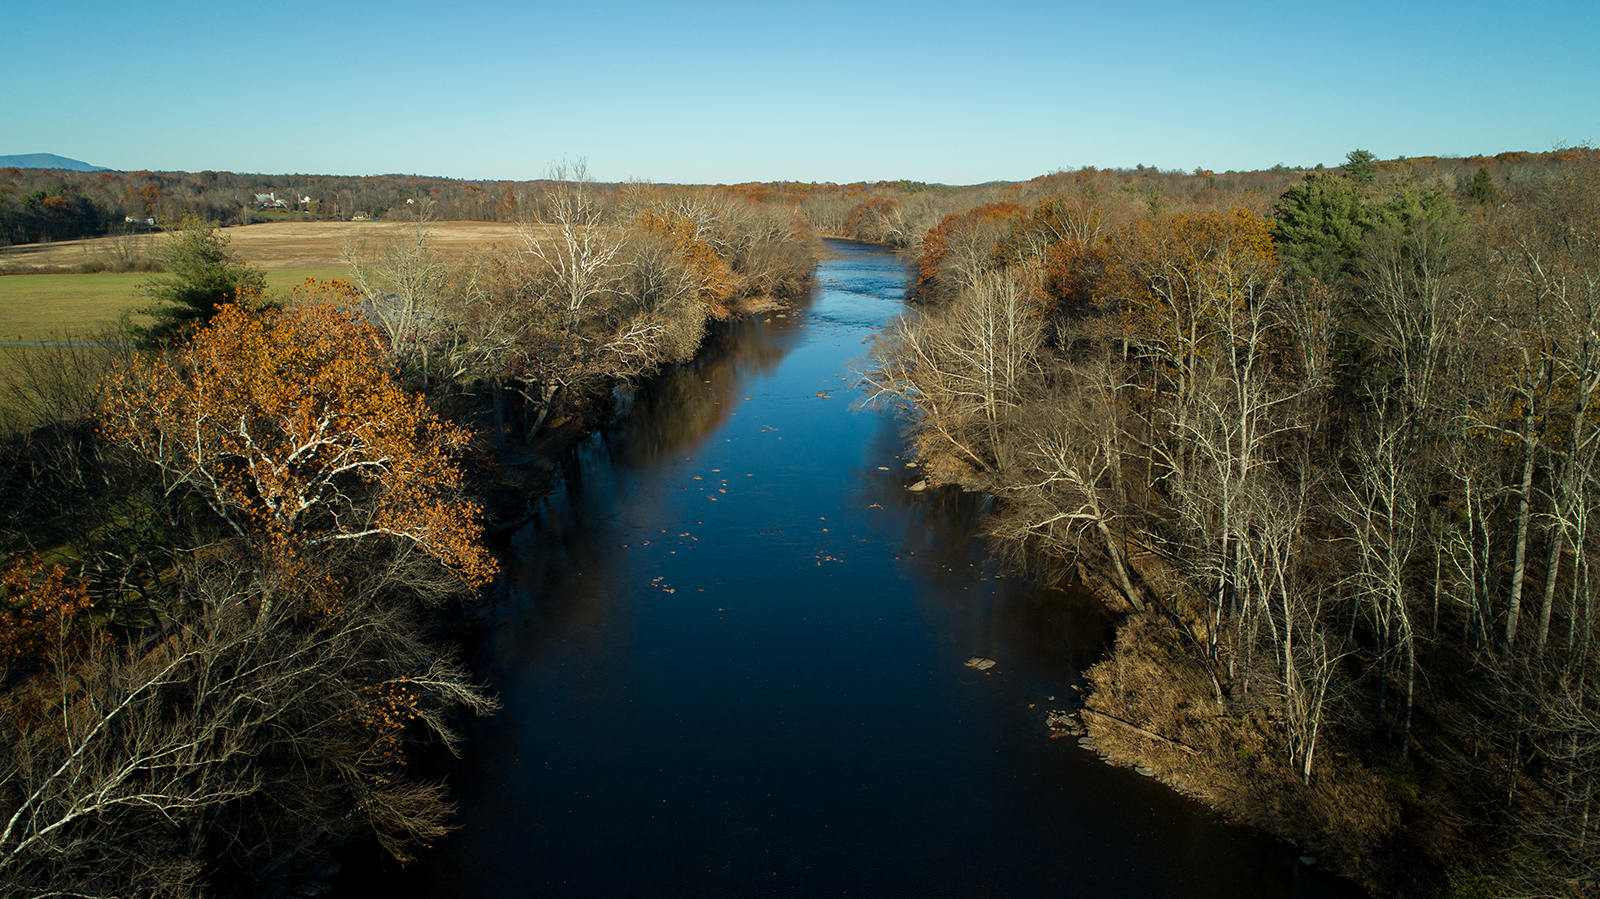 Rondout Creek in Alligerville looking North